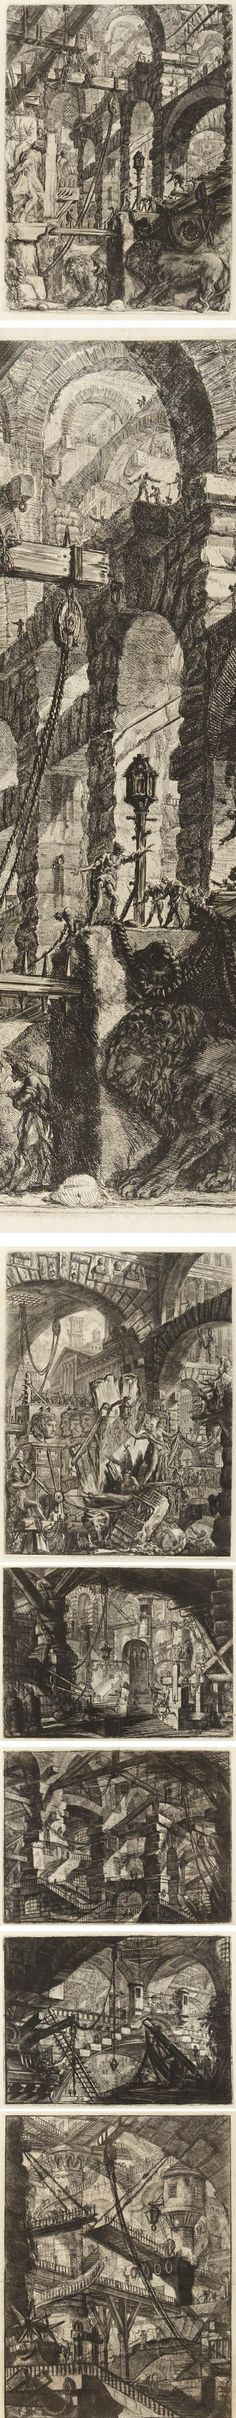 lines and colors :: a blog about drawing, painting, illustration, comics, concept art and other visual arts » Piranesi's Imaginary Prisons at Princeton University Art Museum